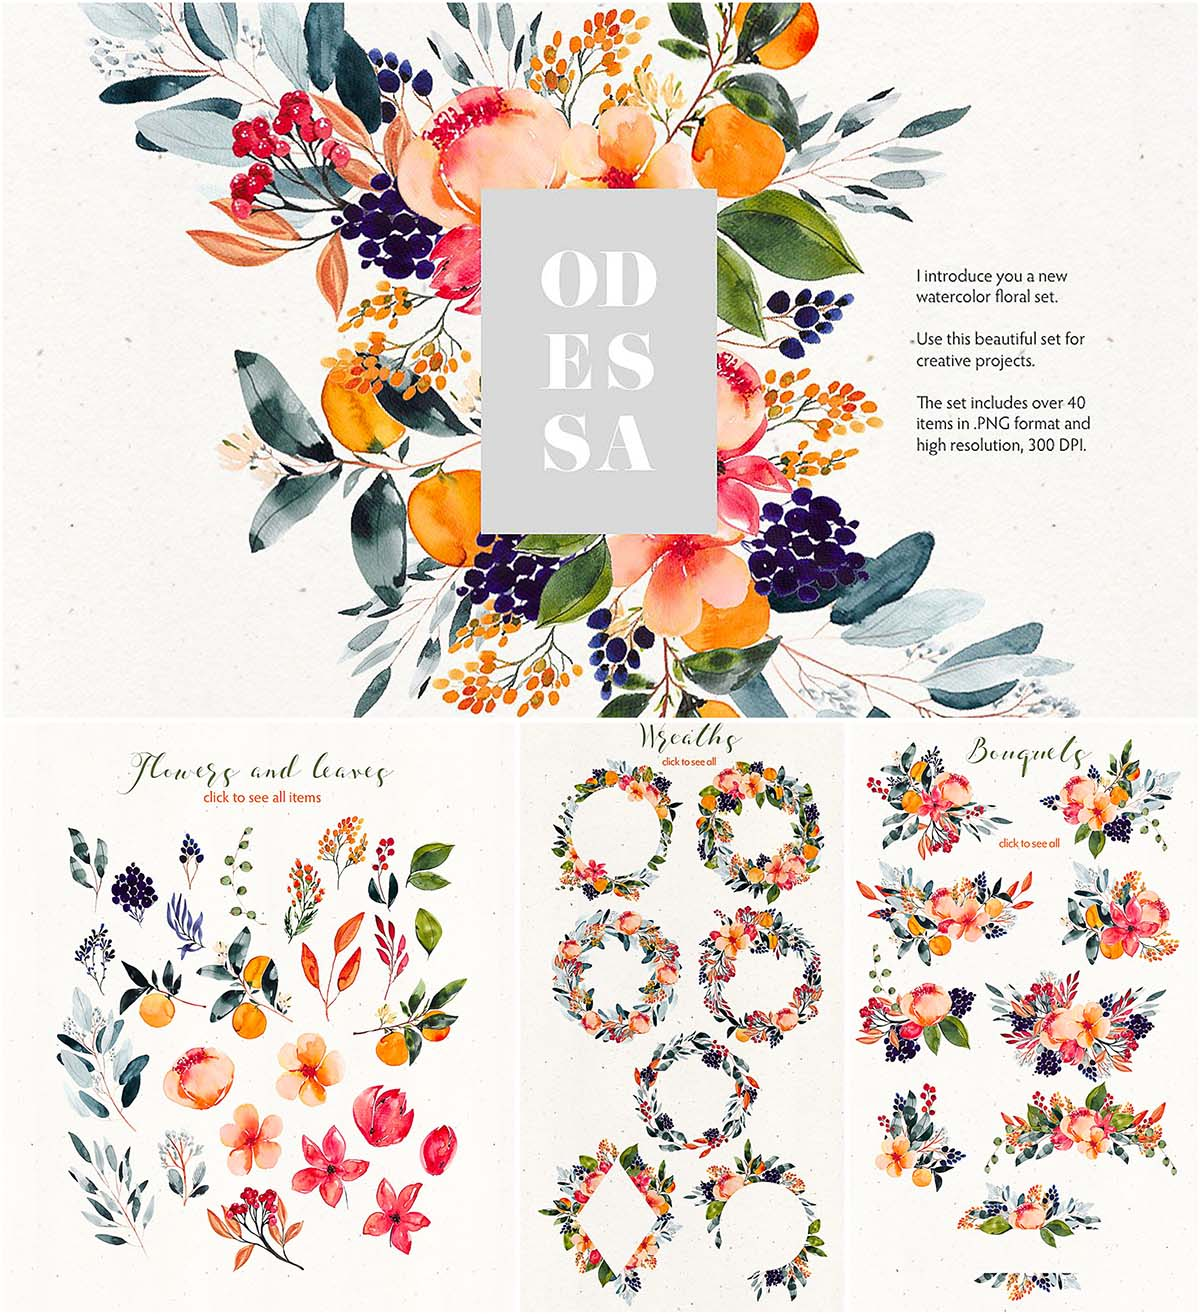 Water color clipart free banner free Odessa floral watercolor clipart | Free download banner free